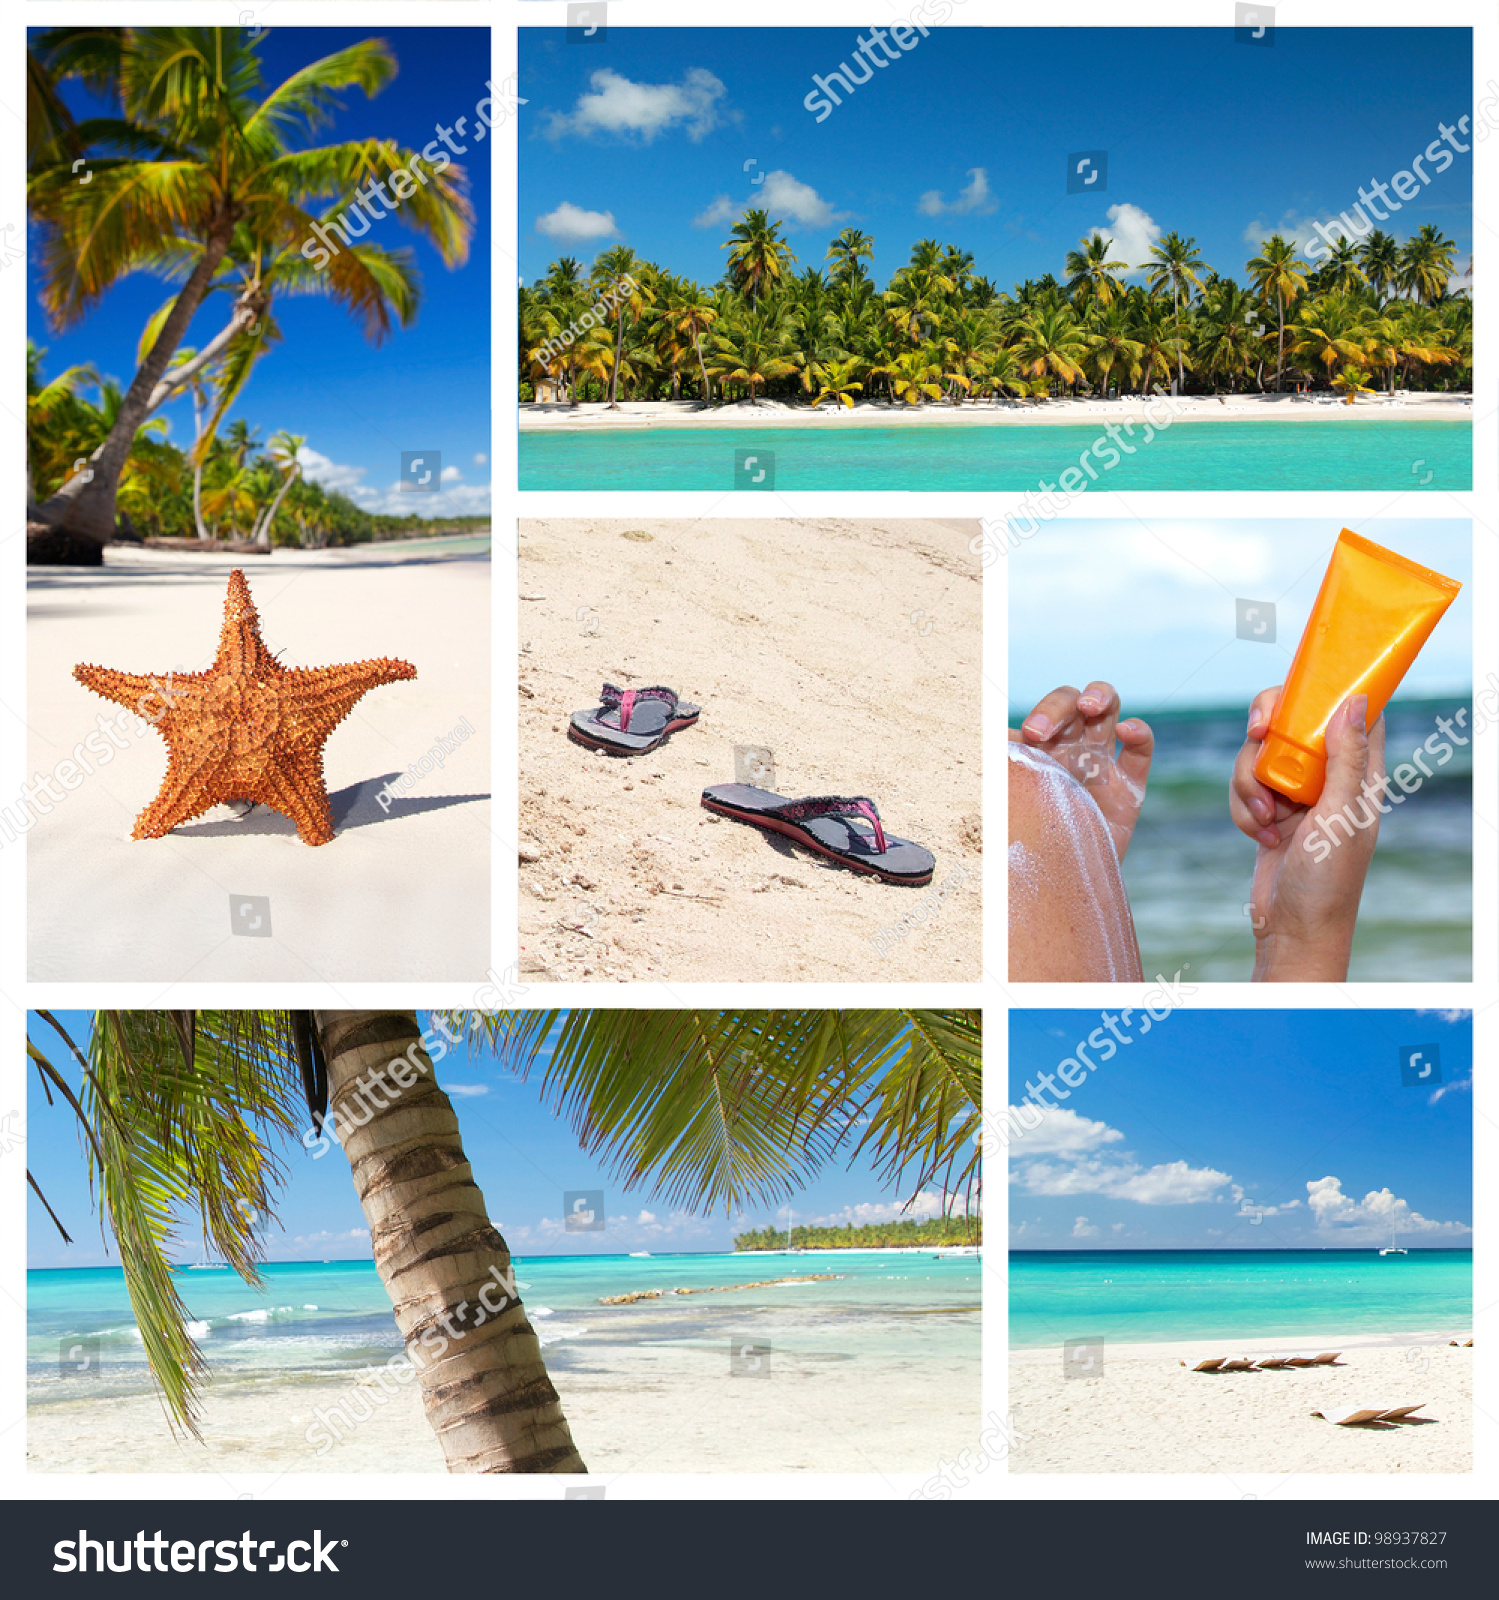 Tropical Nature Collage With Caribbean Landscape Stock